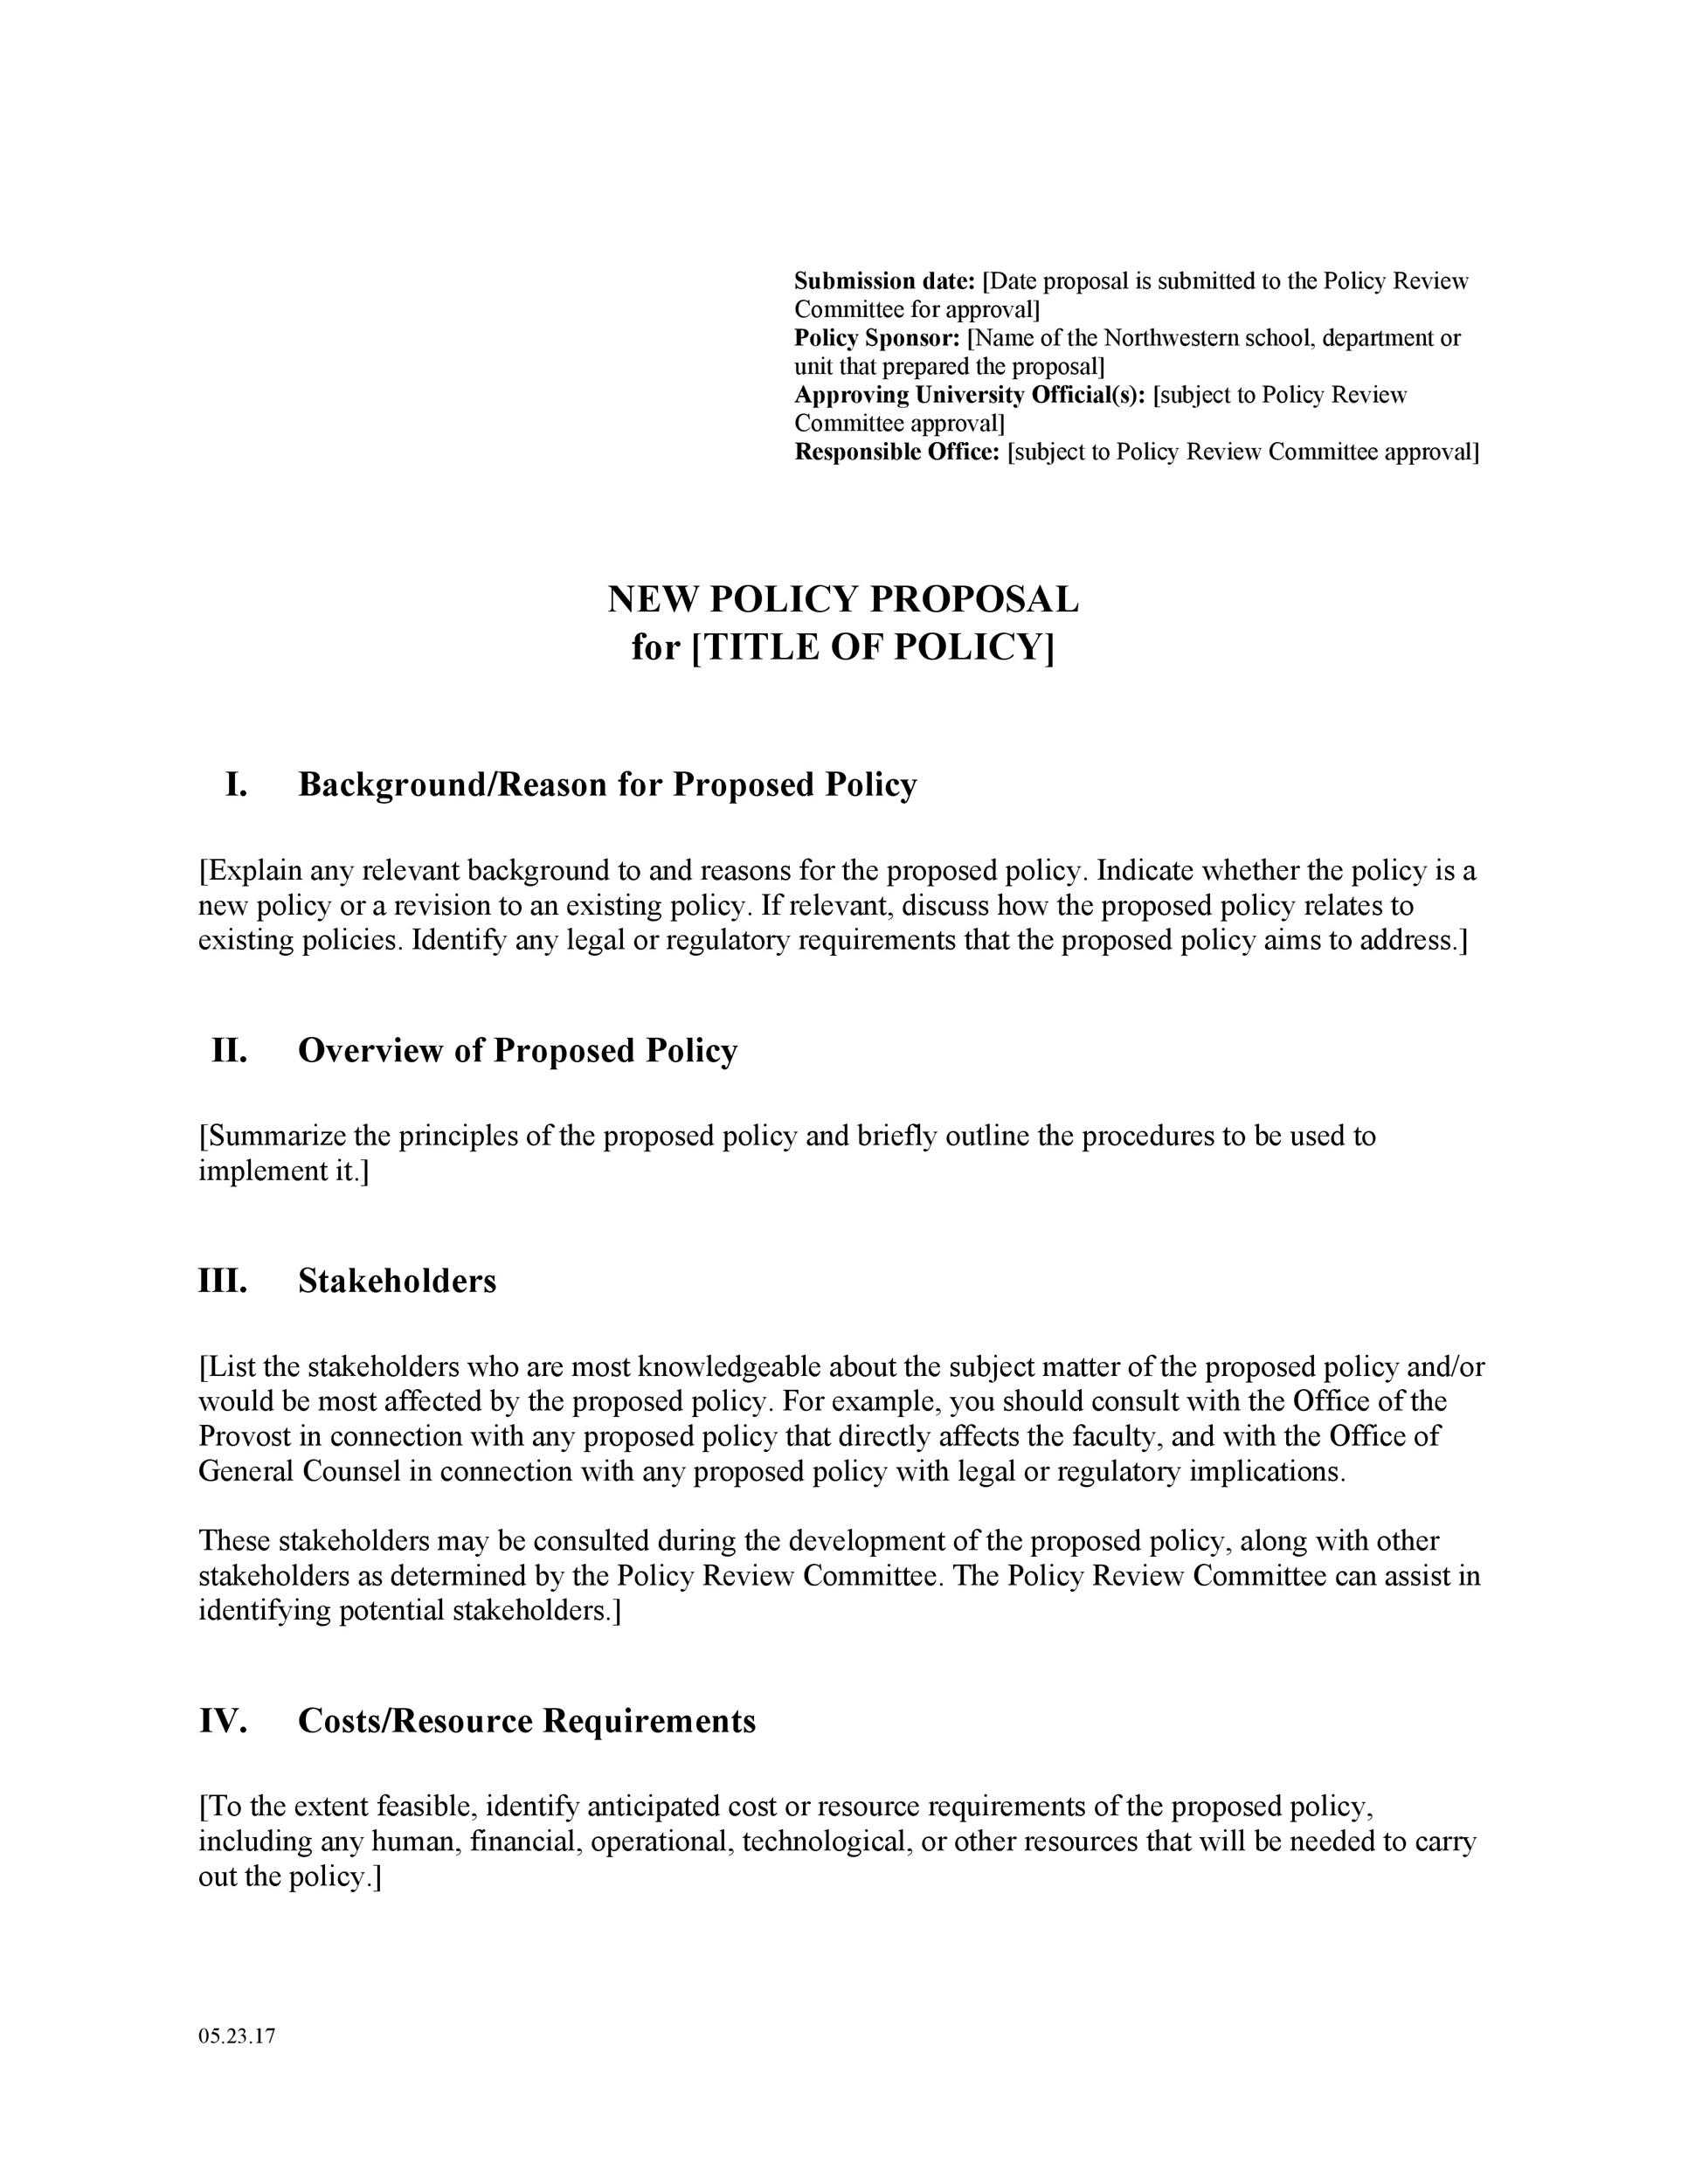 30 Professional Policy Proposal Templates Examples